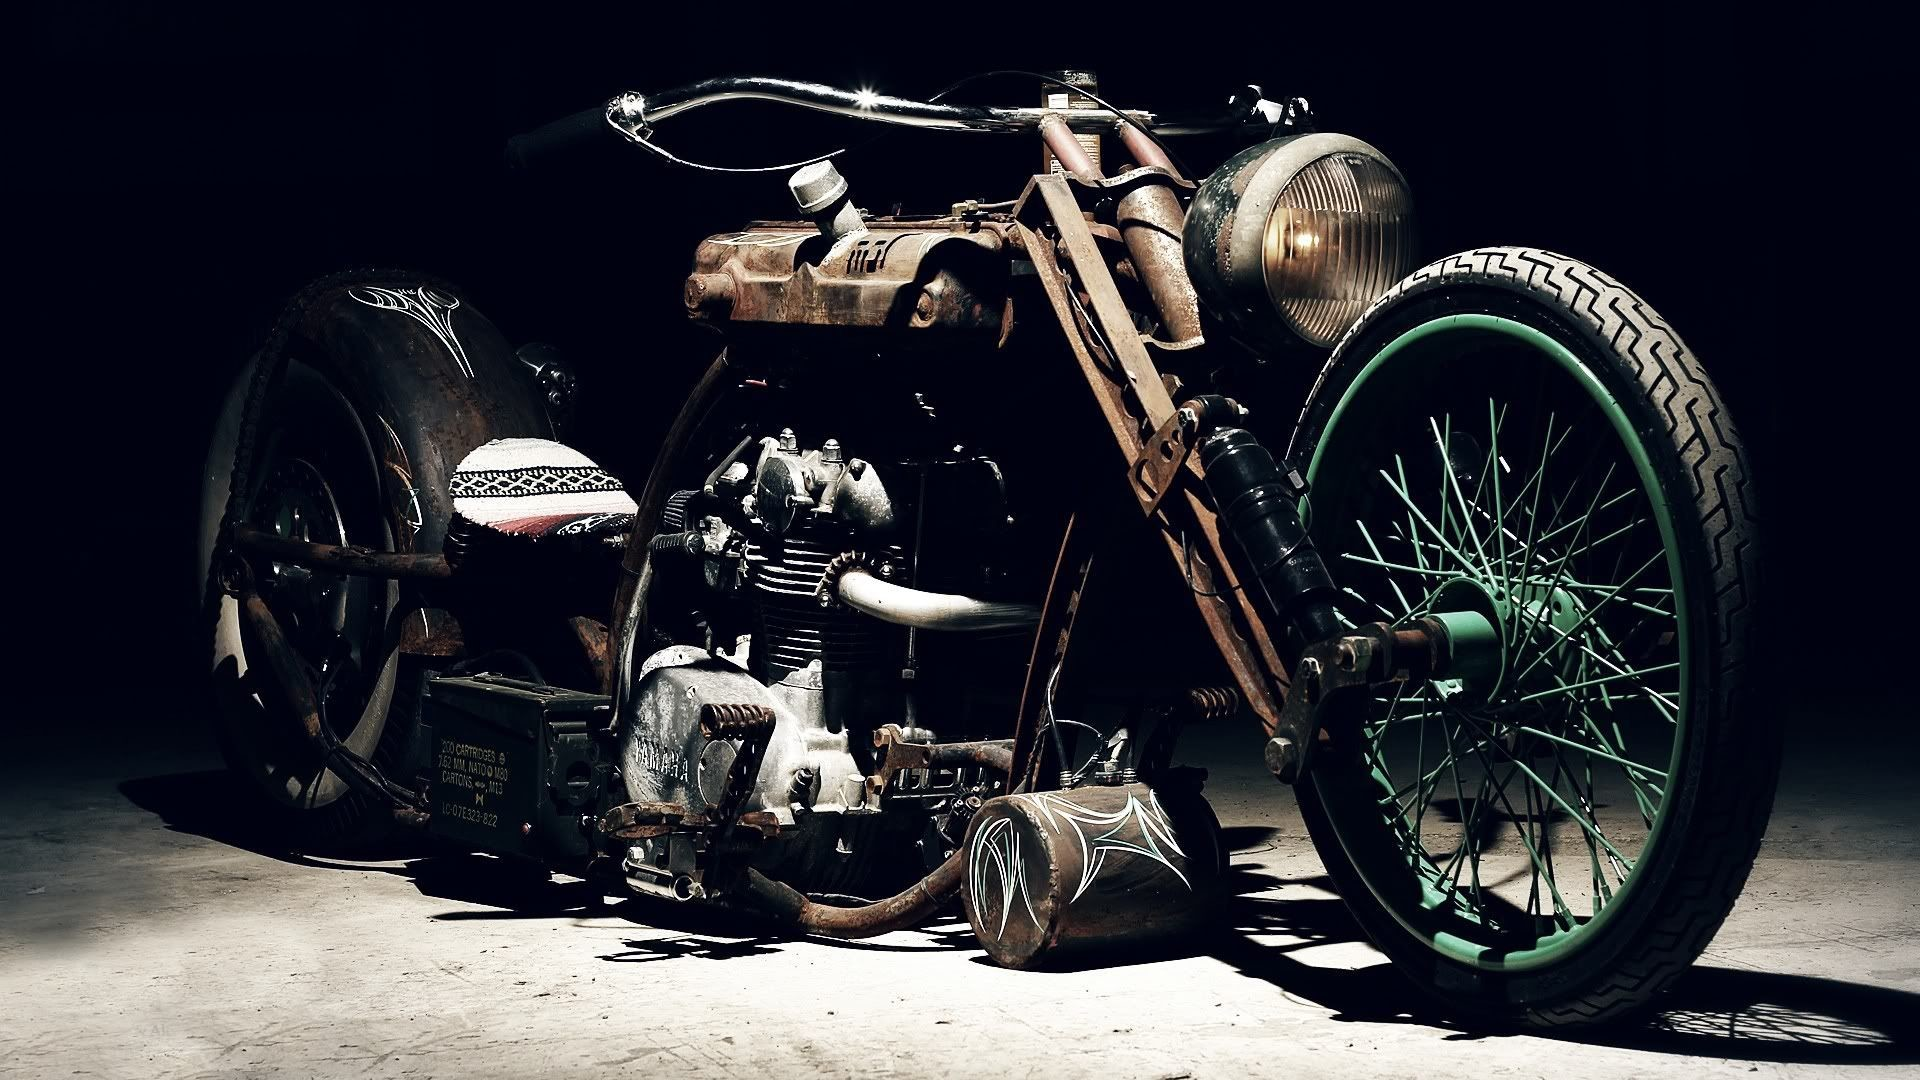 Res: 1920x1080, 2500x1663 Vintage Motorcycle Wallpaper High Quality | Vehicles Wallpapers  ... 2500x1663 Vintage ...